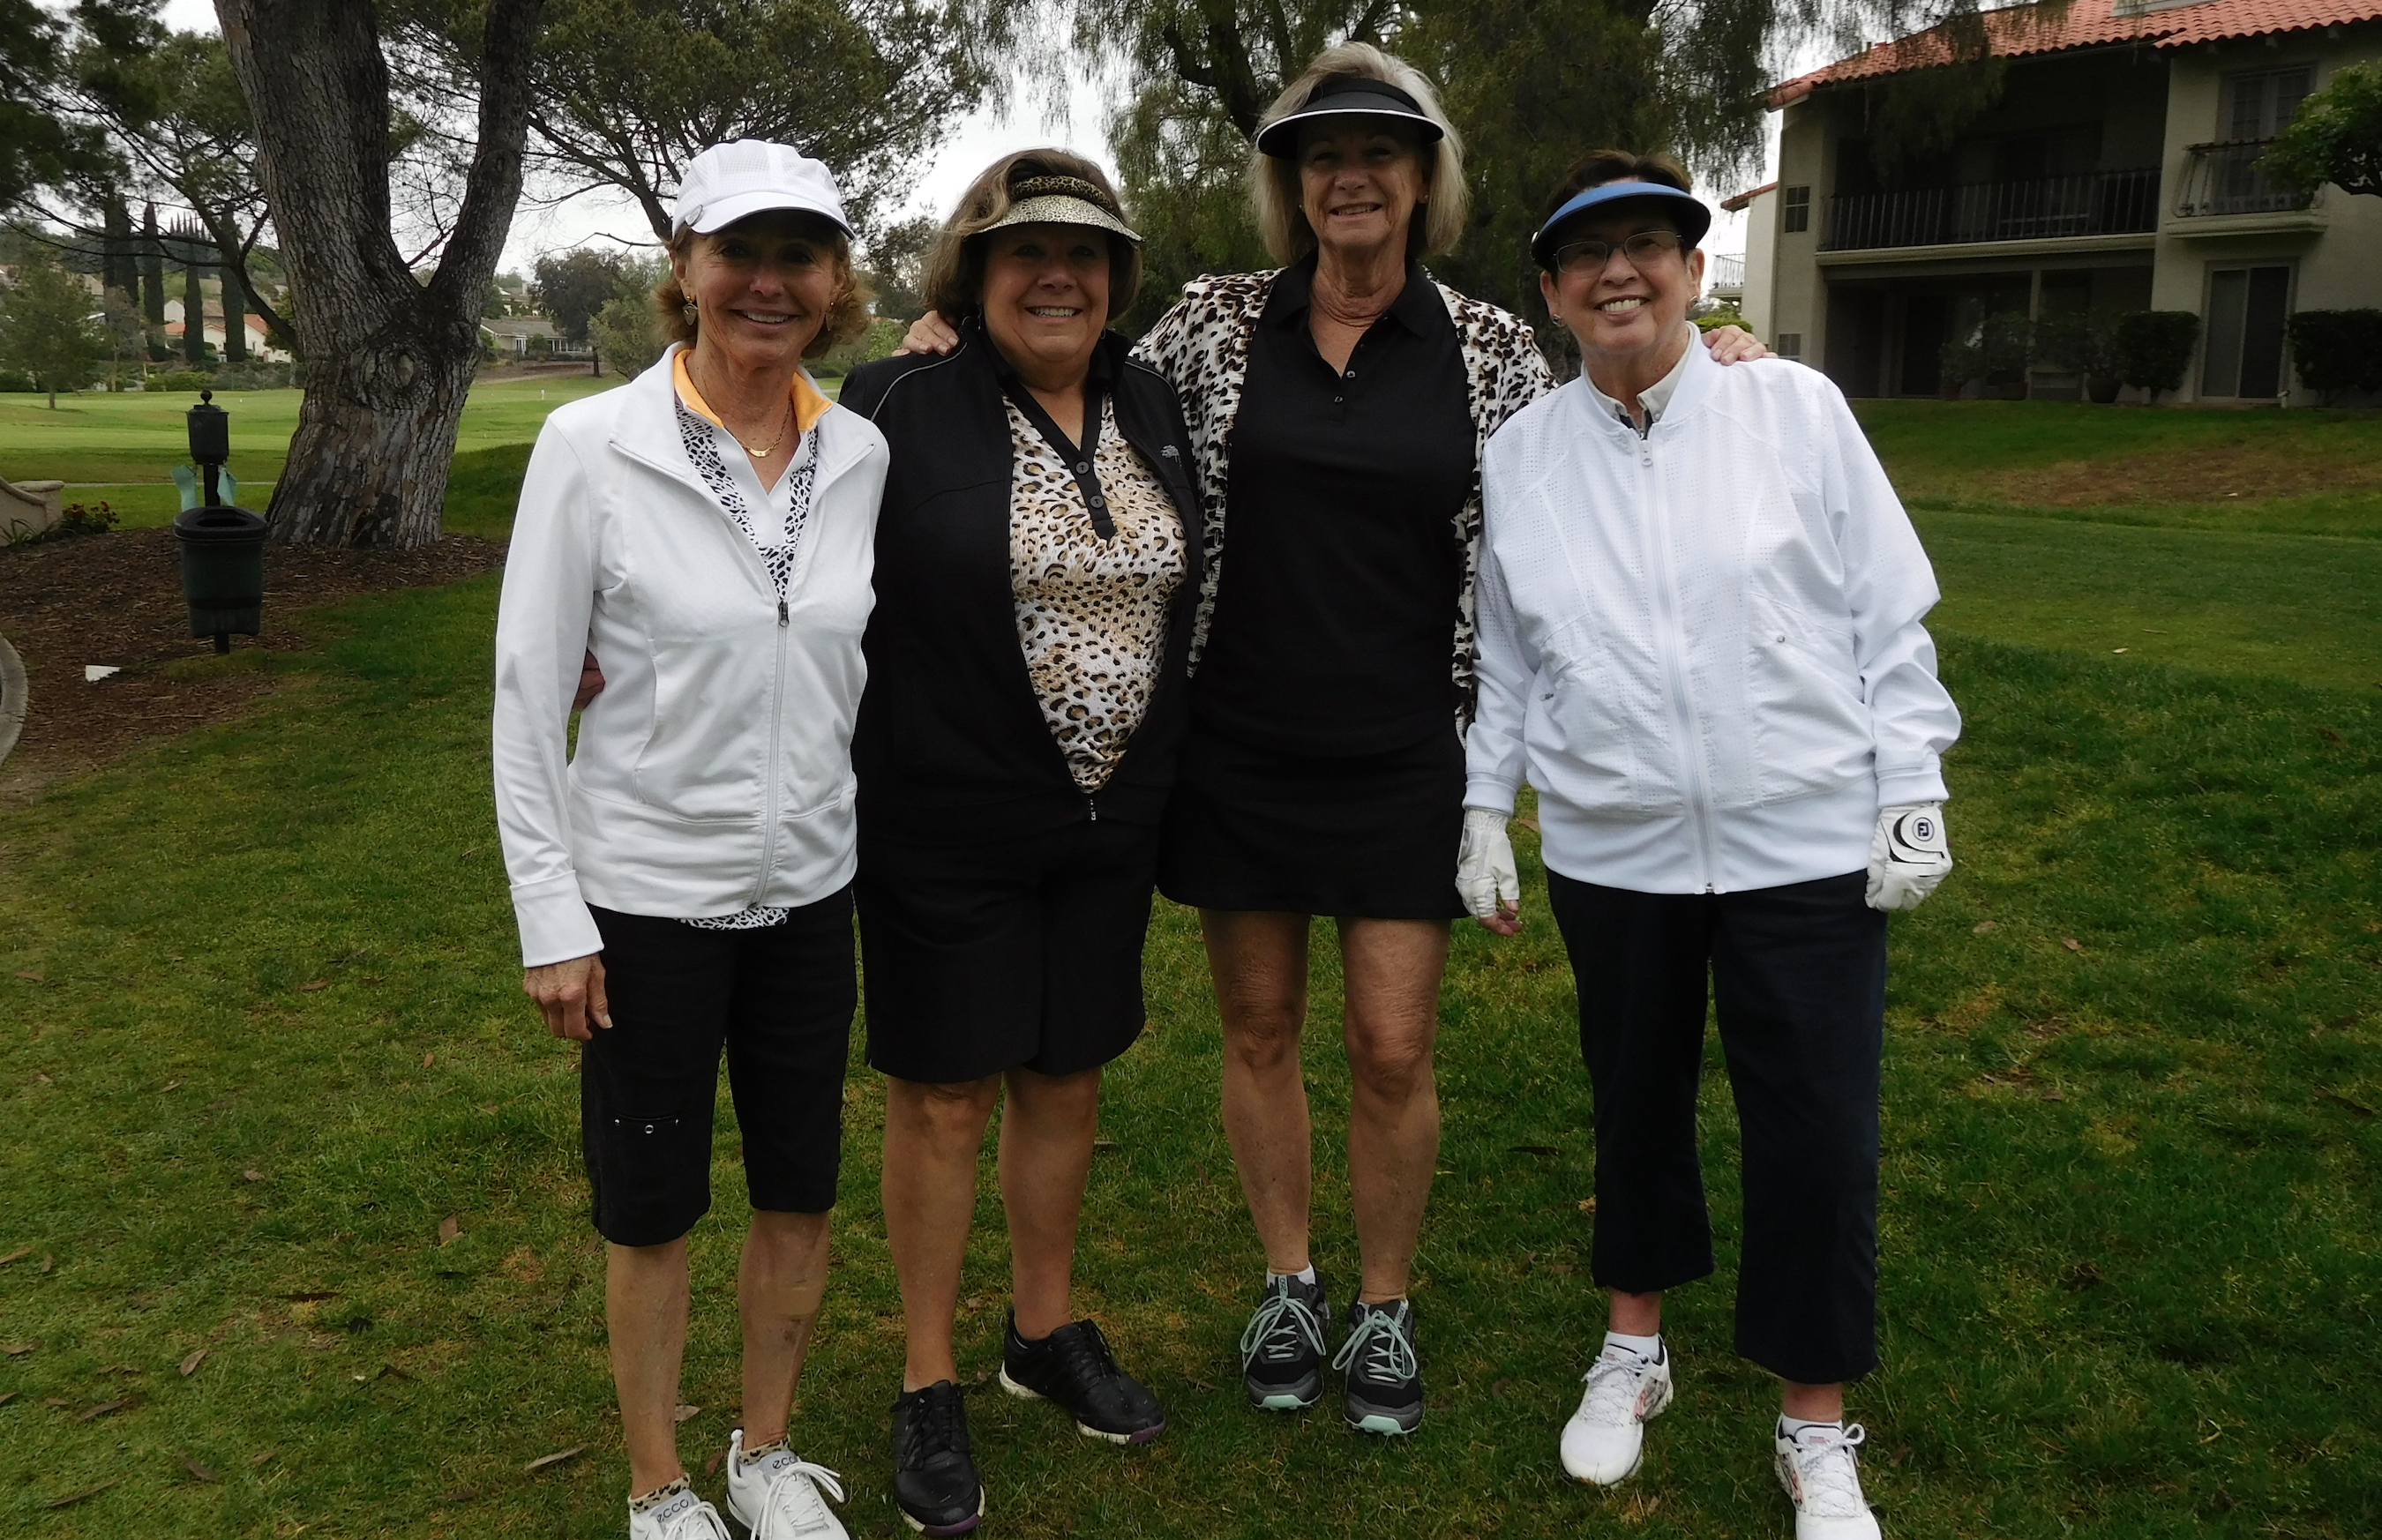 Nancy Elliott, Karen Miller, Brandie Woodfill and Kathy Auten share a laugh at tournament